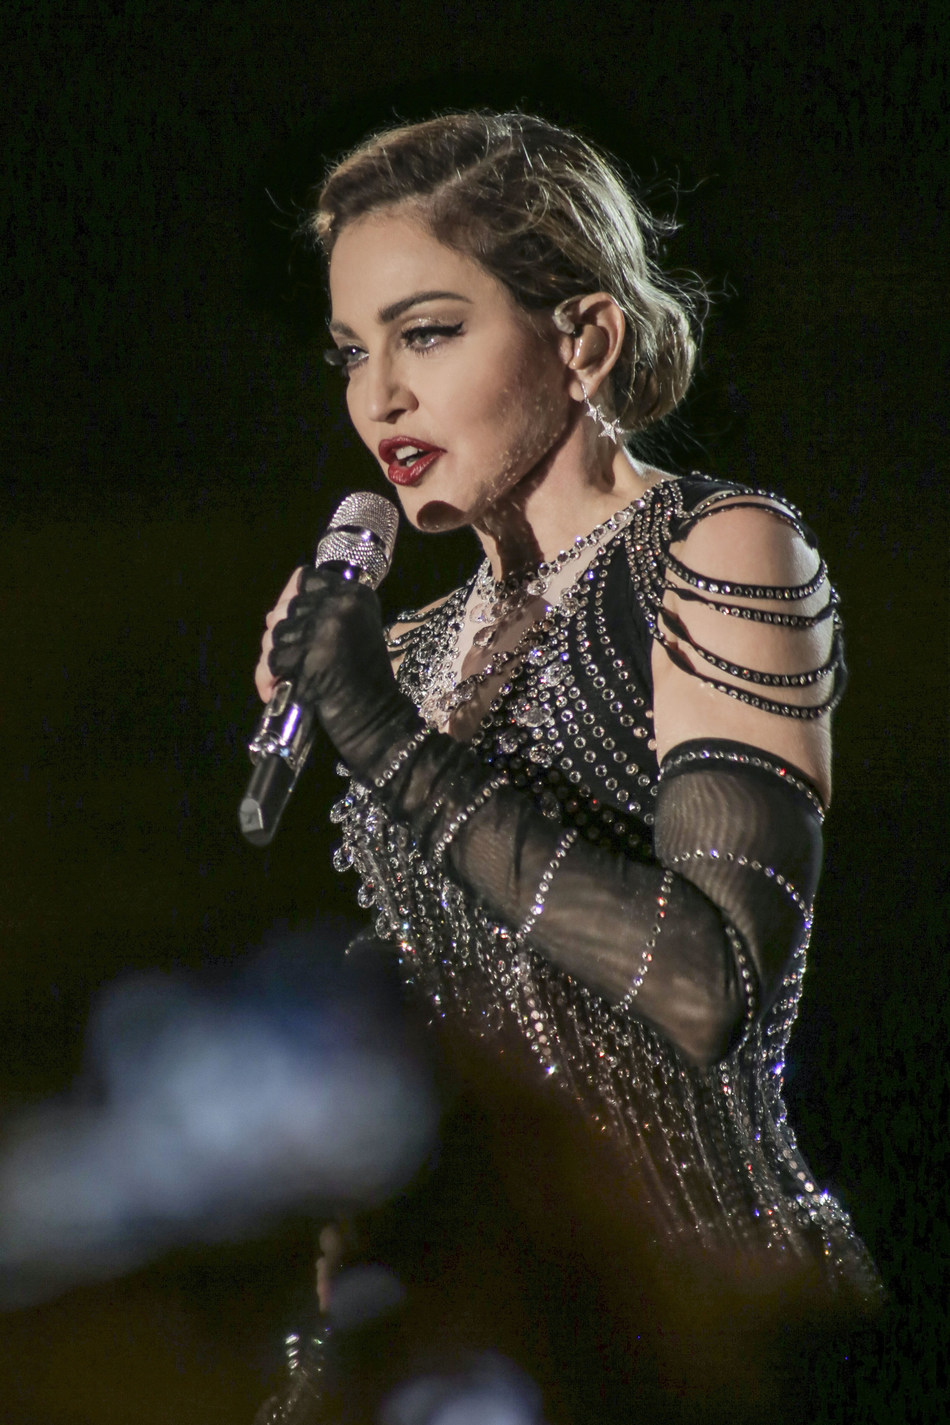 """Alfred Haber Distribution, Inc. Secures Exclusive International Distribution Rights For Showtime's """"Madonna:  Rebel Heart Tour"""" (photo credit: Josh Brandao)"""